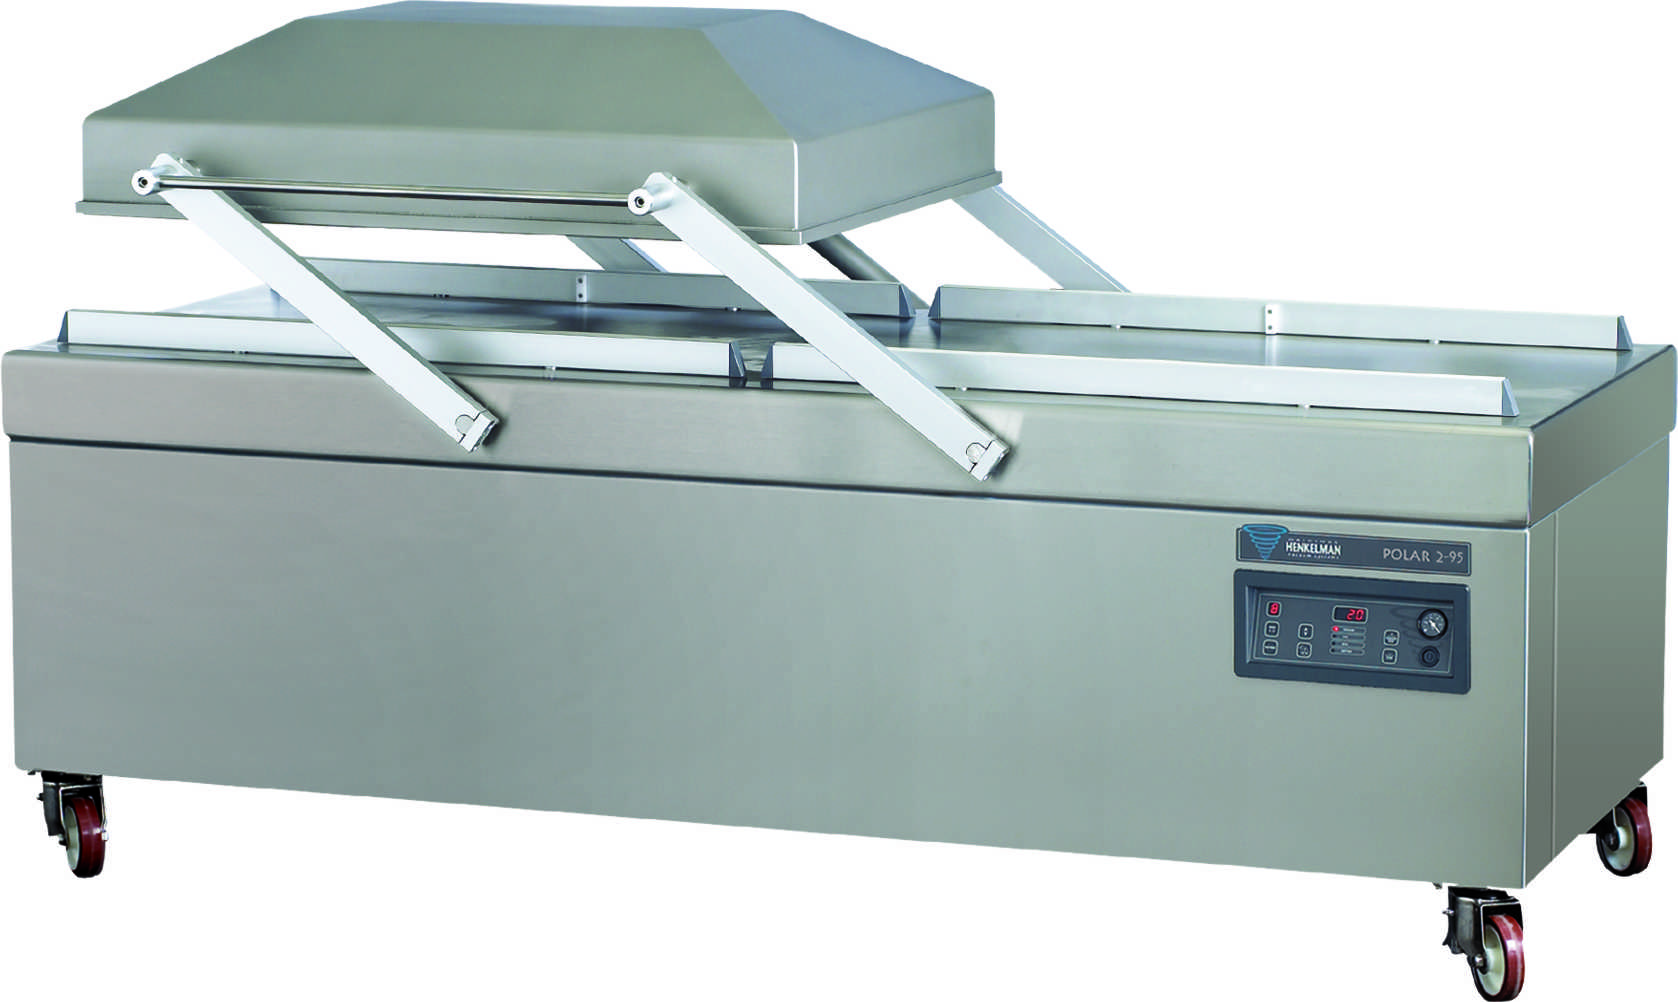 Henkelman Polar 2-95 Vacuum Packer